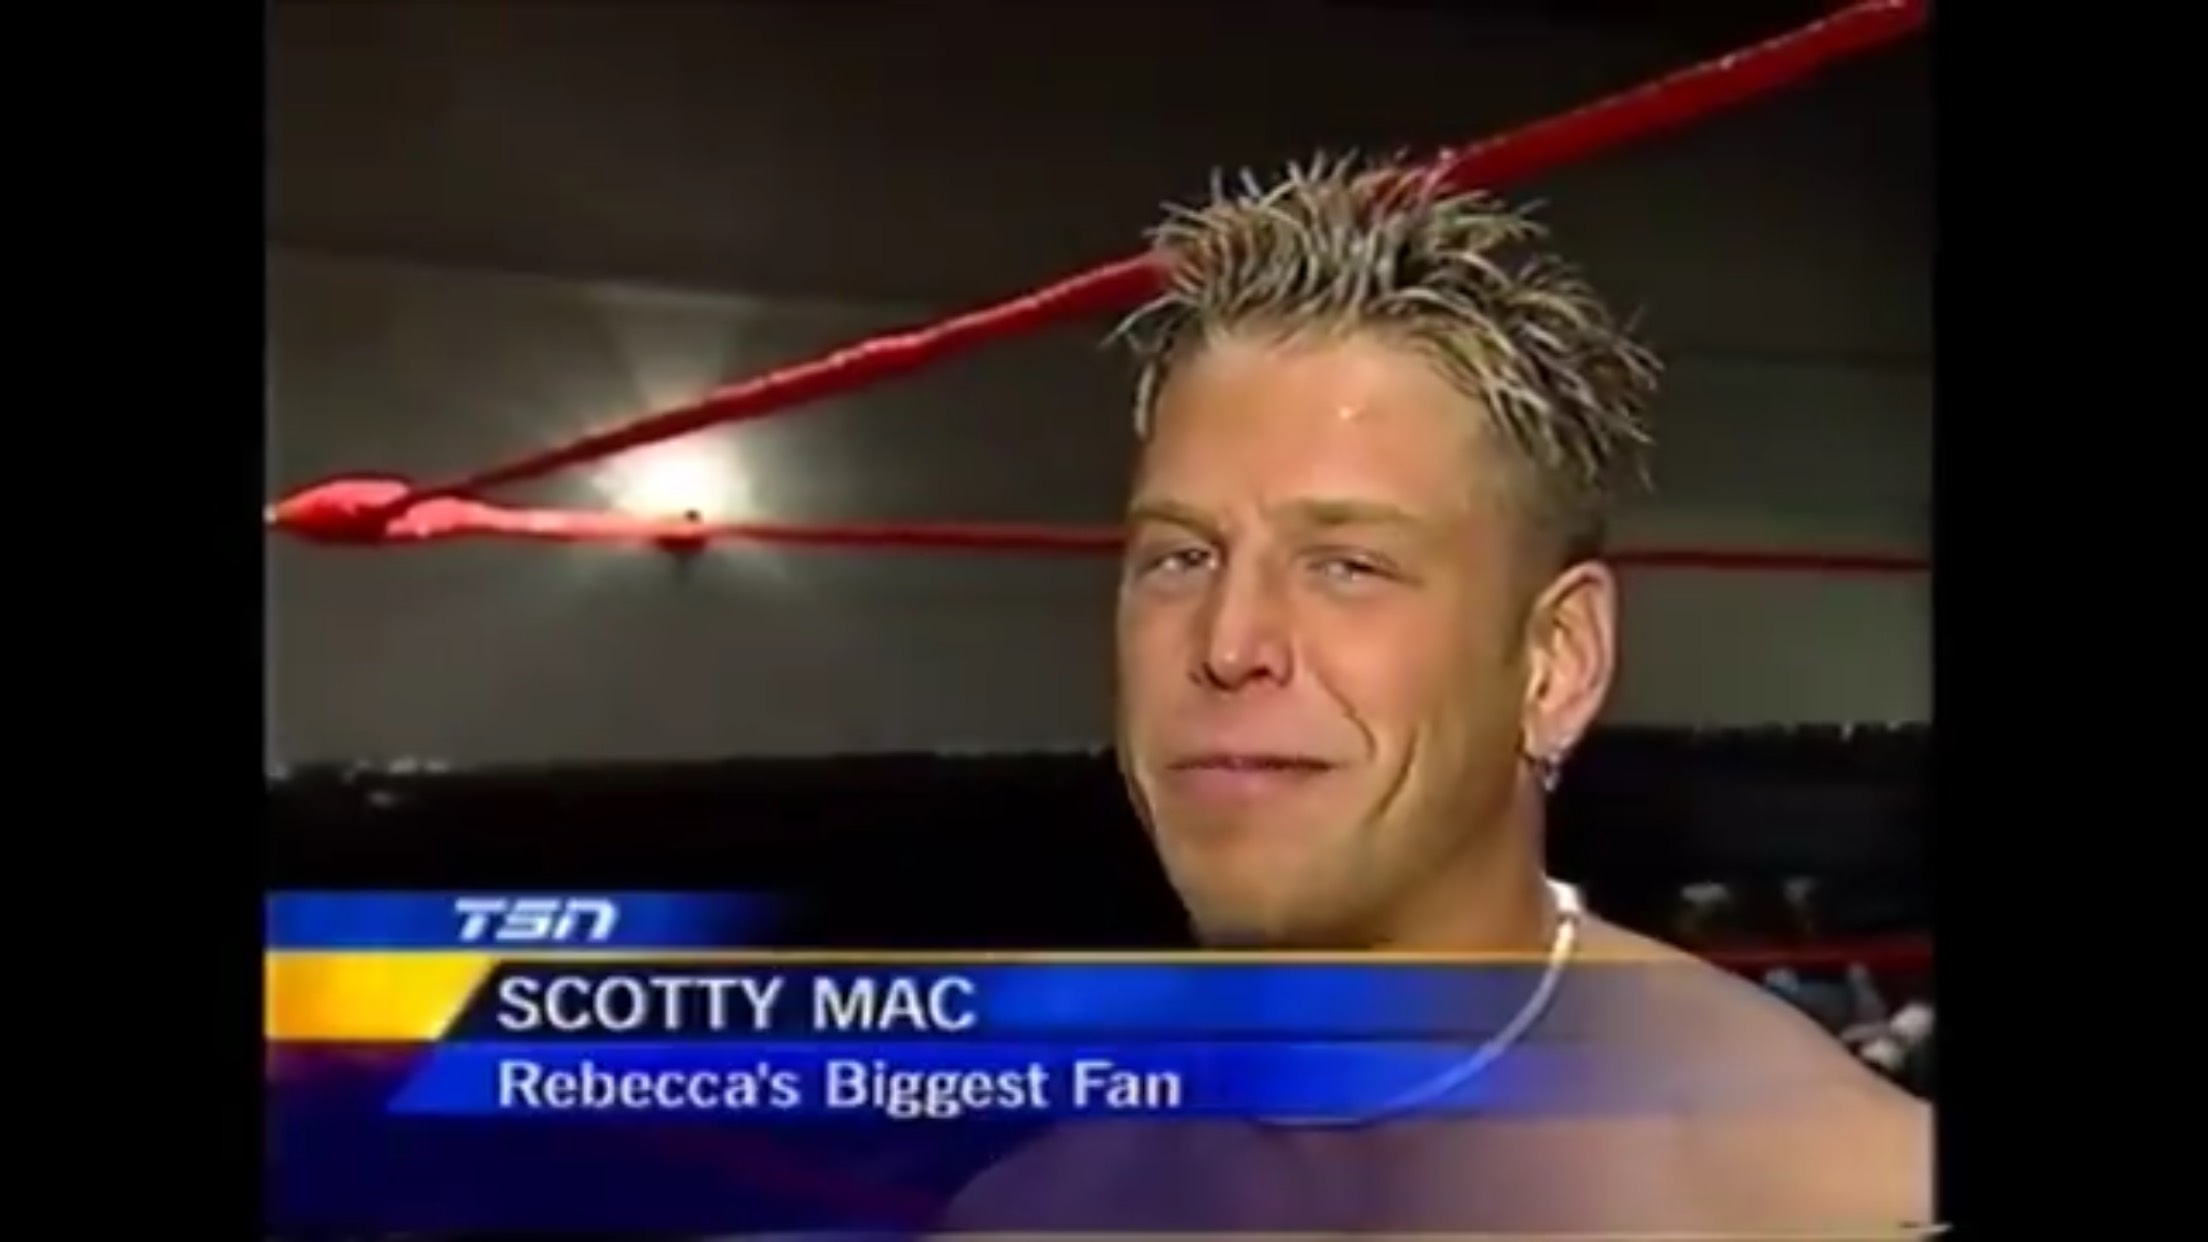 Scotty Mac: Rebecca's Biggest Fan